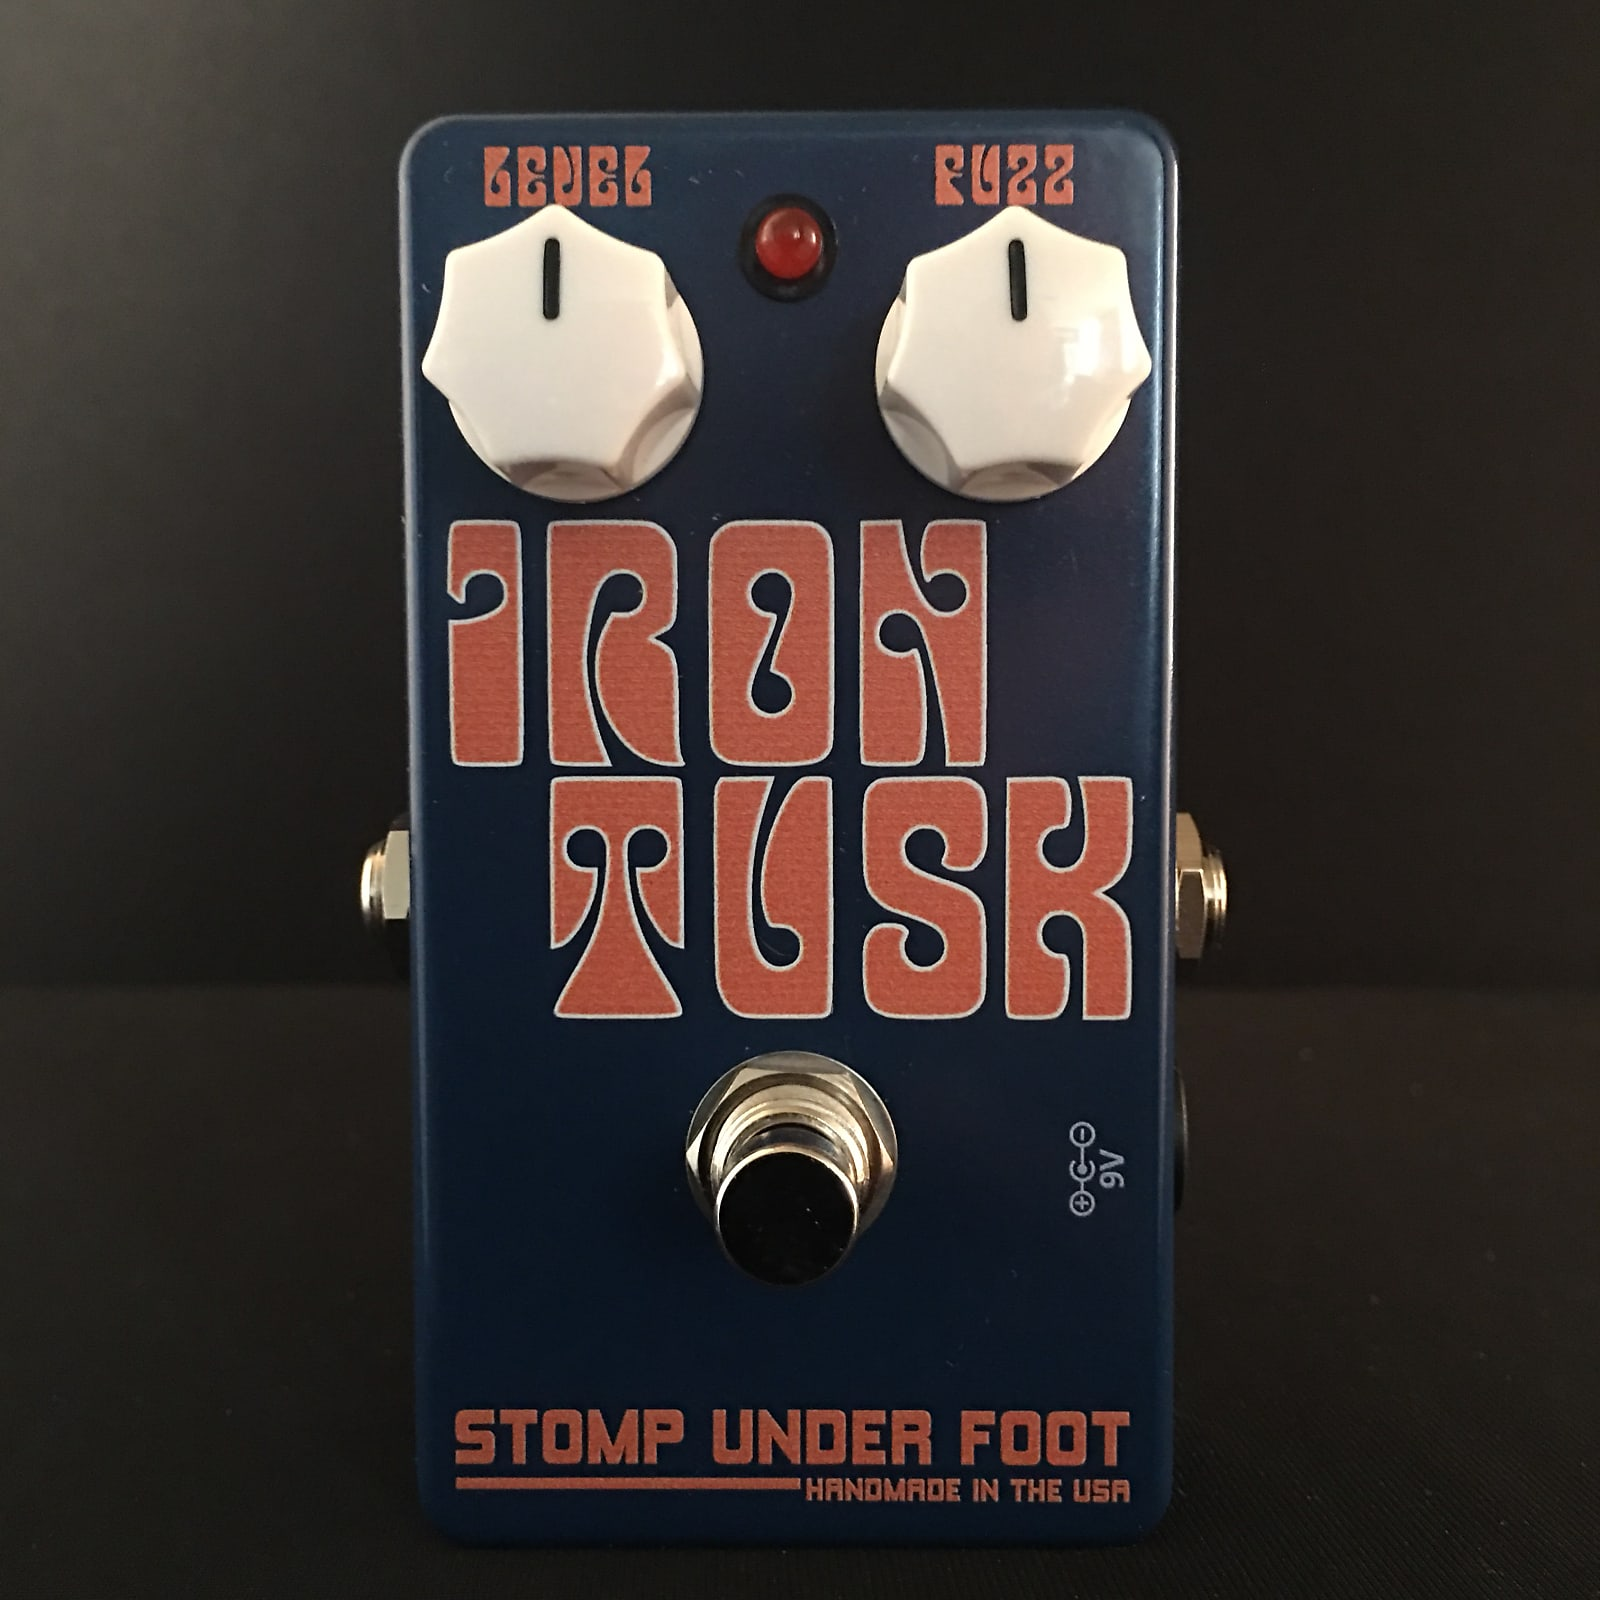 Stomp Under Foot Iron Tusk Fuzz BCR Limited Run Authorized Dealer Exclusive Free Shipping!